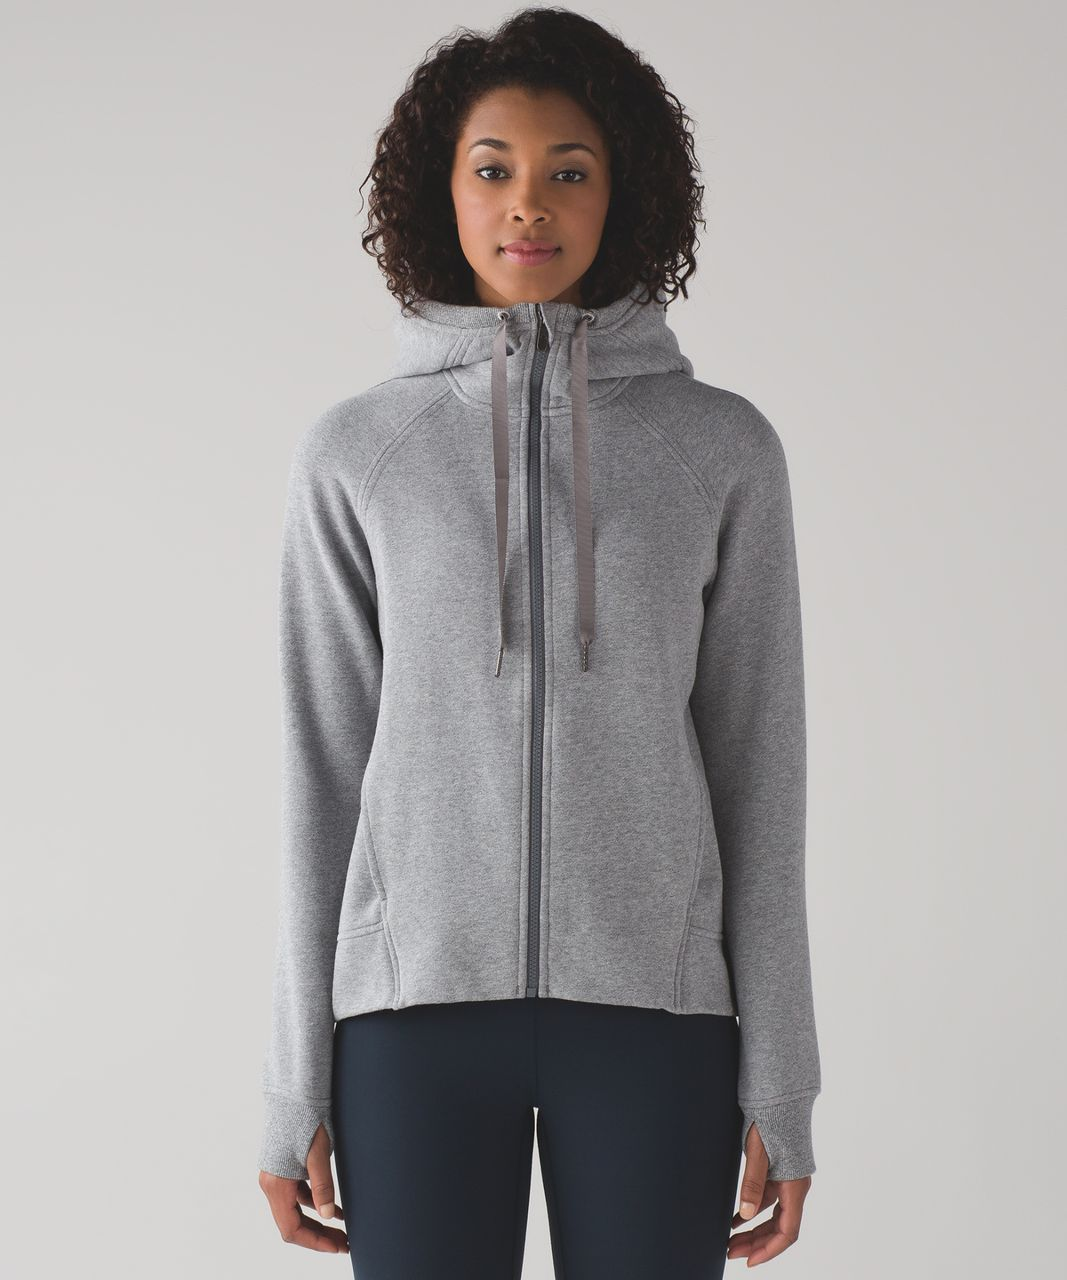 Lululemon Fleece Please Hoodie - Heathered Speckled Medium Grey ...